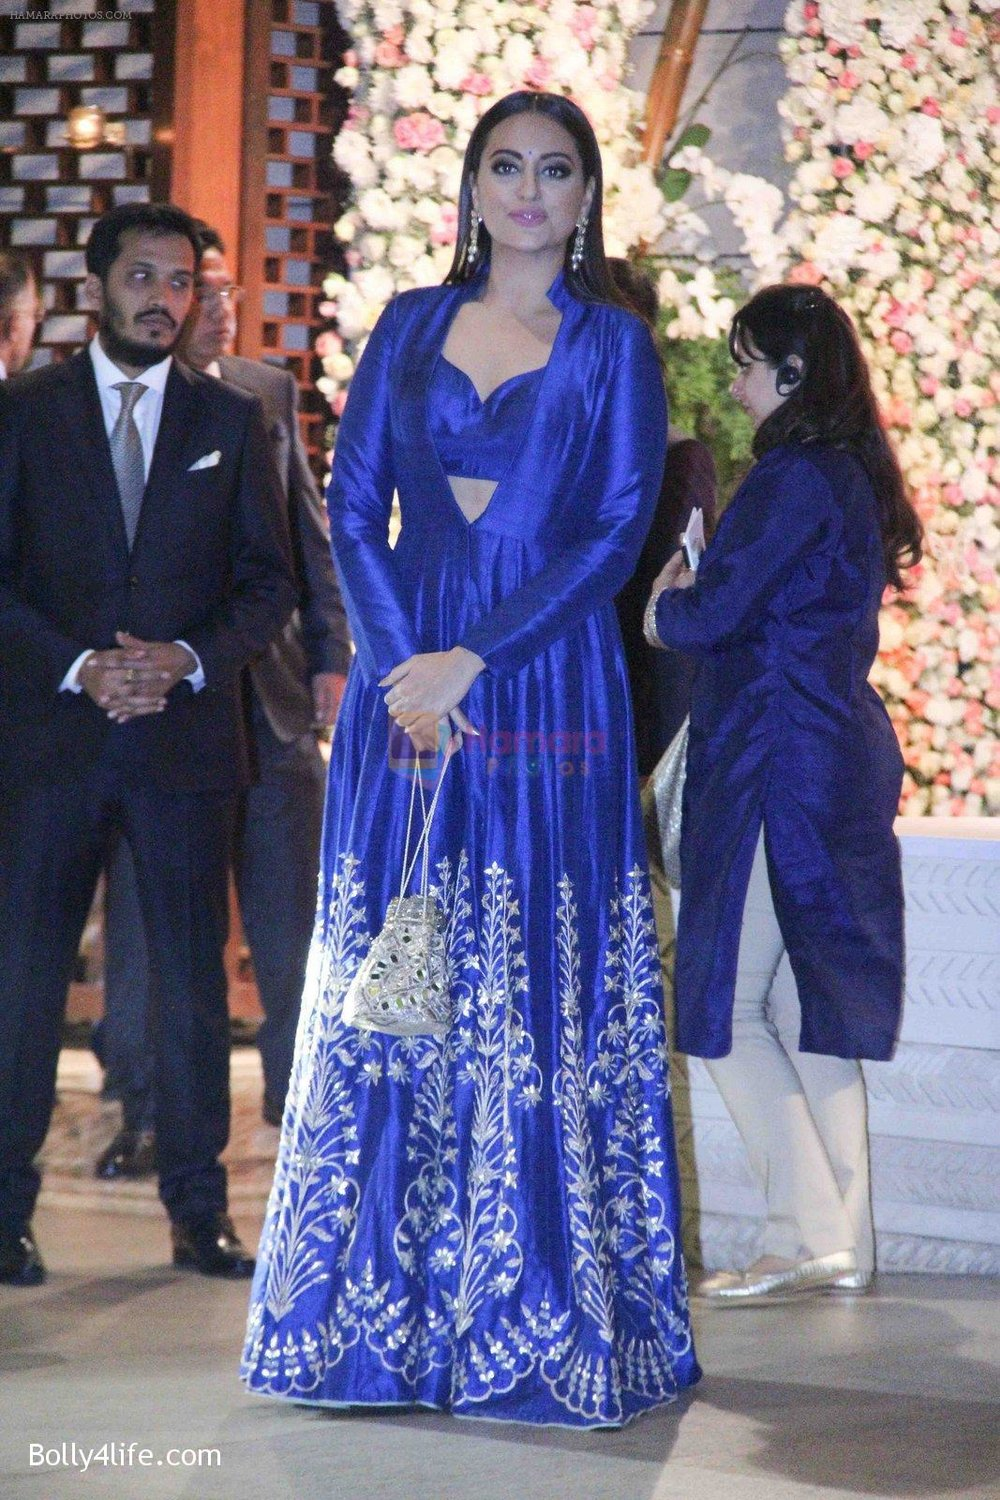 Sonakshi-Sinha-at-the-Ambanis-wedding-party-of-their-niece-Isheta-Salgaoncar-2.jpg